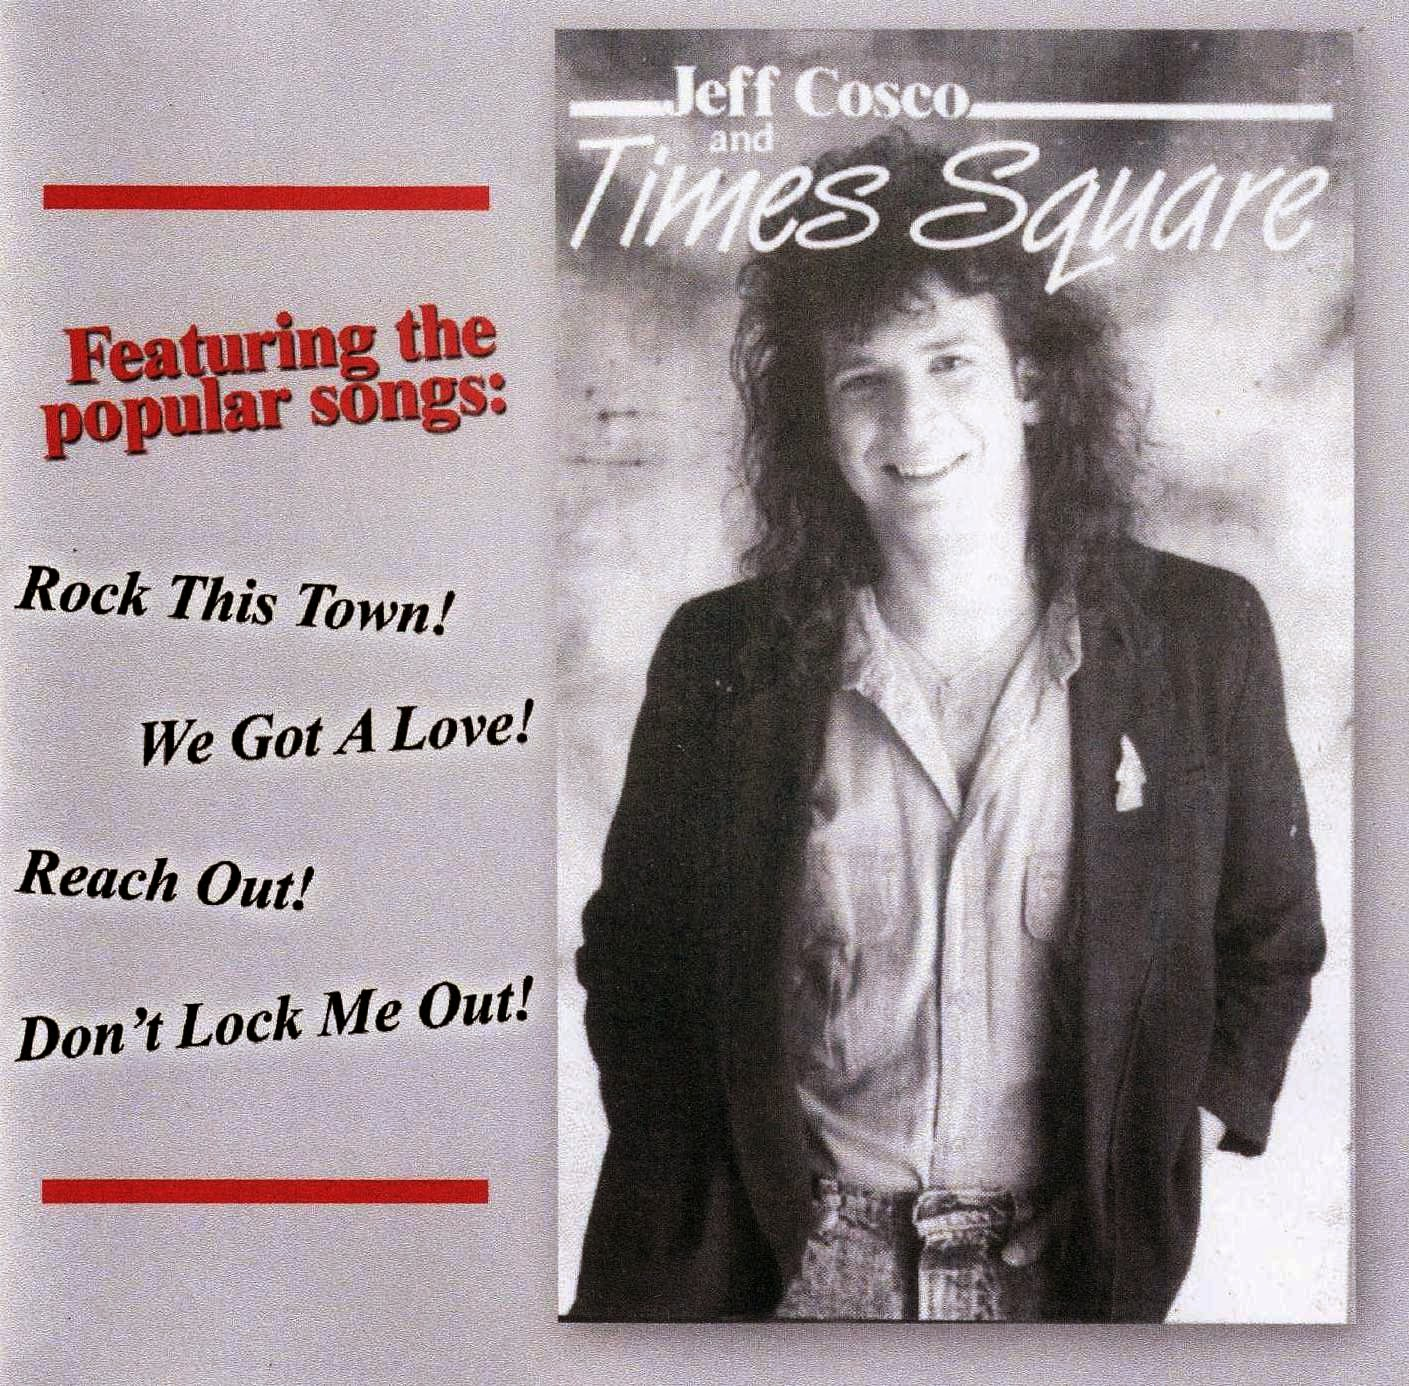 Jeff Cosco and Times Square st 1989 aor melodic rock